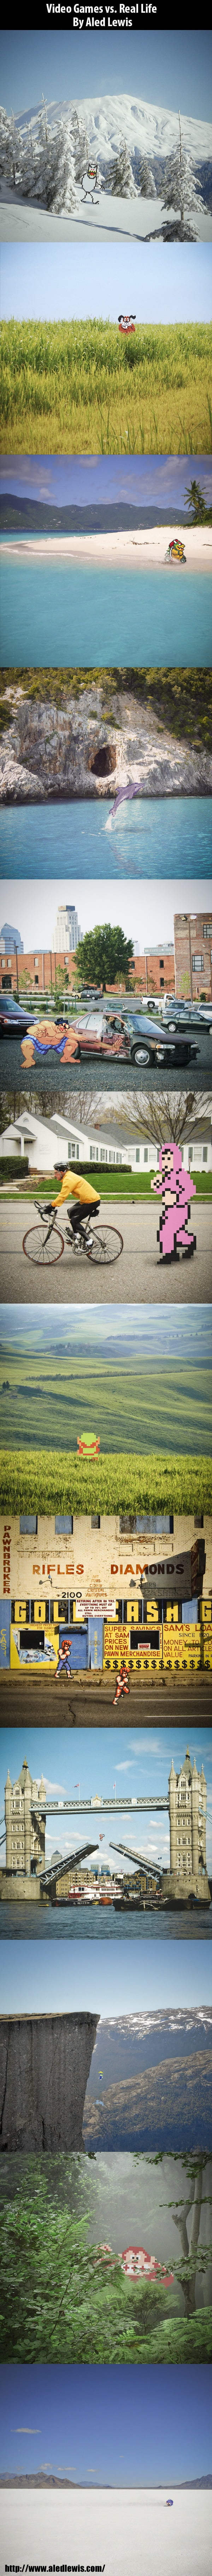 Video games Vs Real life